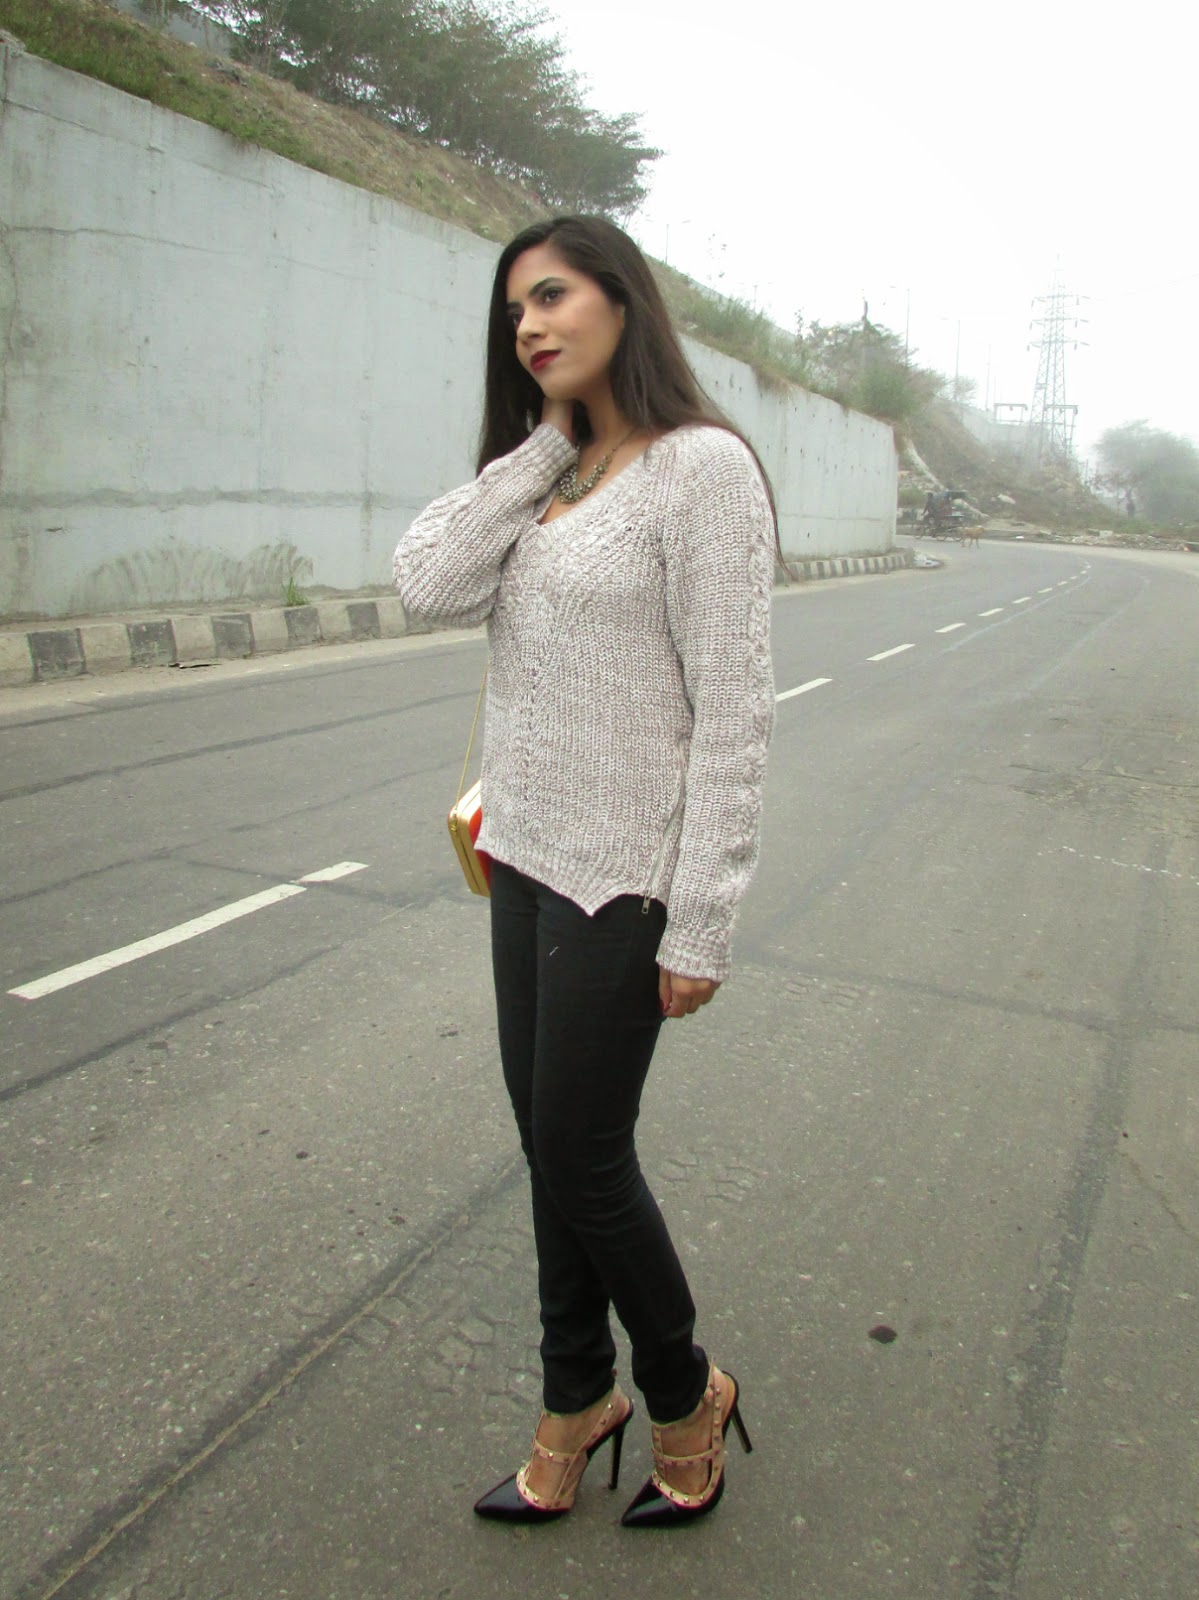 Long Sleeves Zipper Side Slit Knitwear, heavy knit sweater, pullover, warm pullover, winter trends 2015, how to style heavy sweater, india winter trends,peplu, floral , floral peplum , floral peplum top , frock top , peplum top with floral print, peplum floral , sweat heart neck line top , distressed,distressedjeans, distressedboyfriendjeans,boyfrien,boyfriendjeans,boyfriendjeanswithcutout,ripped,rippejeans, fashion , chcnova,ootd,chicnovareview , distressedjeans chicnova,rippedboyfriendjeans,distressedpants,howtostylerippedjeans,howtostyleboyfriendjeans,howtostylebaggyjeans,crochet , lace , summer, white , crochet top , lace top , white lace top , white crochet top , net , net top , white net top,Statement necklace, necklace, statement necklaces, big necklace, heavy necklaces , gold necklace, silver necklace, silver statement necklace, gold statement necklace, studded statement necklace , studded necklace, stone studded necklace, stone necklace, stove studded statement necklace, stone statement necklace, stone studded gold statement necklace, stone studded silver statement necklace, black stone necklace, black stone studded statement necklace, black stone necklace, black stone statement necklace, neon statement necklace, neon stone statement necklace, black and silver necklace, black and gold necklace, blank and silver statement necklace, black and gold statement necklace, silver jewellery, gold jewellery, stove jewellery, stone studded jewellery, imitation jewellery, artificial jewellery, junk jewellery, cheap jewellery ,chicnova Statement necklace, chicnova necklace, chicnova statement necklaces,chicnova big necklace, chicnova  heavy necklaces , chicnova gold necklace, chicnova silver necklace,  chicnova  statement necklace,chicnova  gold statement necklace,chicnova studded statement necklace , chicnova studded necklace, chicnova stone studded necklace, chicnova stone necklace, chicnova stove studded statement necklace, chicnova stone statement necklace, chicnova